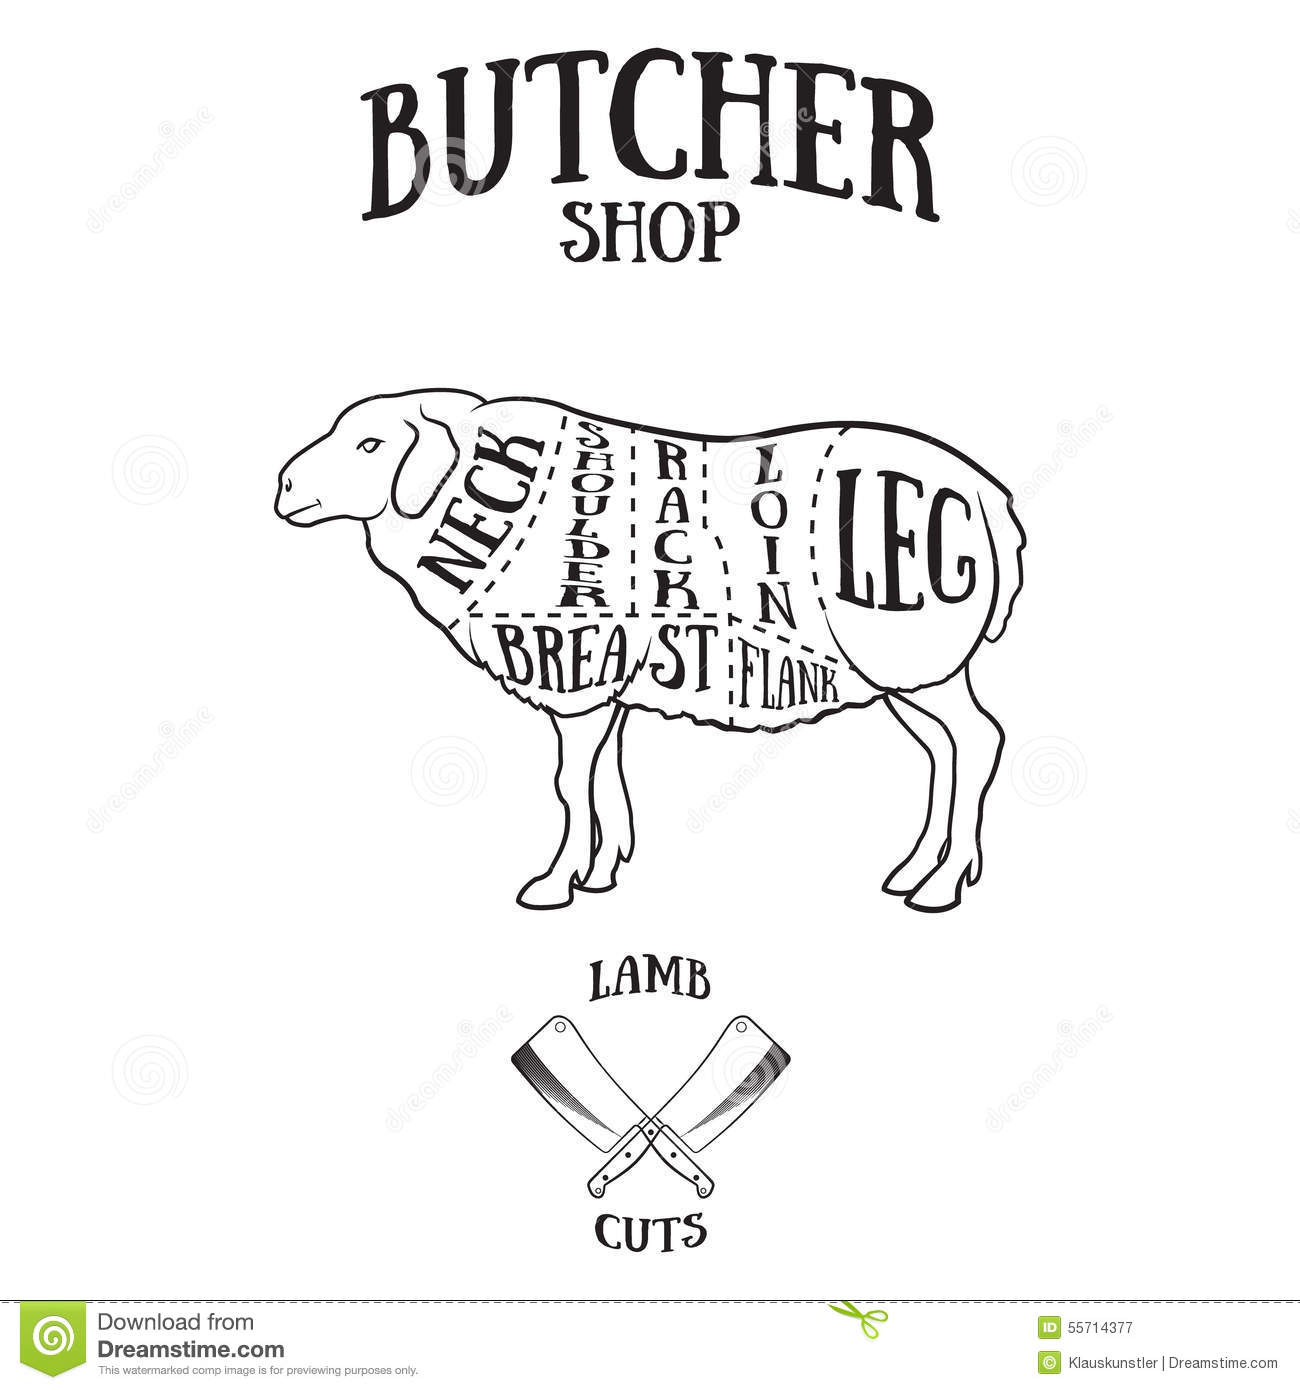 Member Spotlight Fogo De Chao likewise 30 Cuts 30 Days Beef Tenderloin likewise Lamb additionally Flatiron Steak together with Stock Illustration Pork Cuts Diagram Hand Drawn Butcher Scheme Image55384070. on what are the cuts of pork